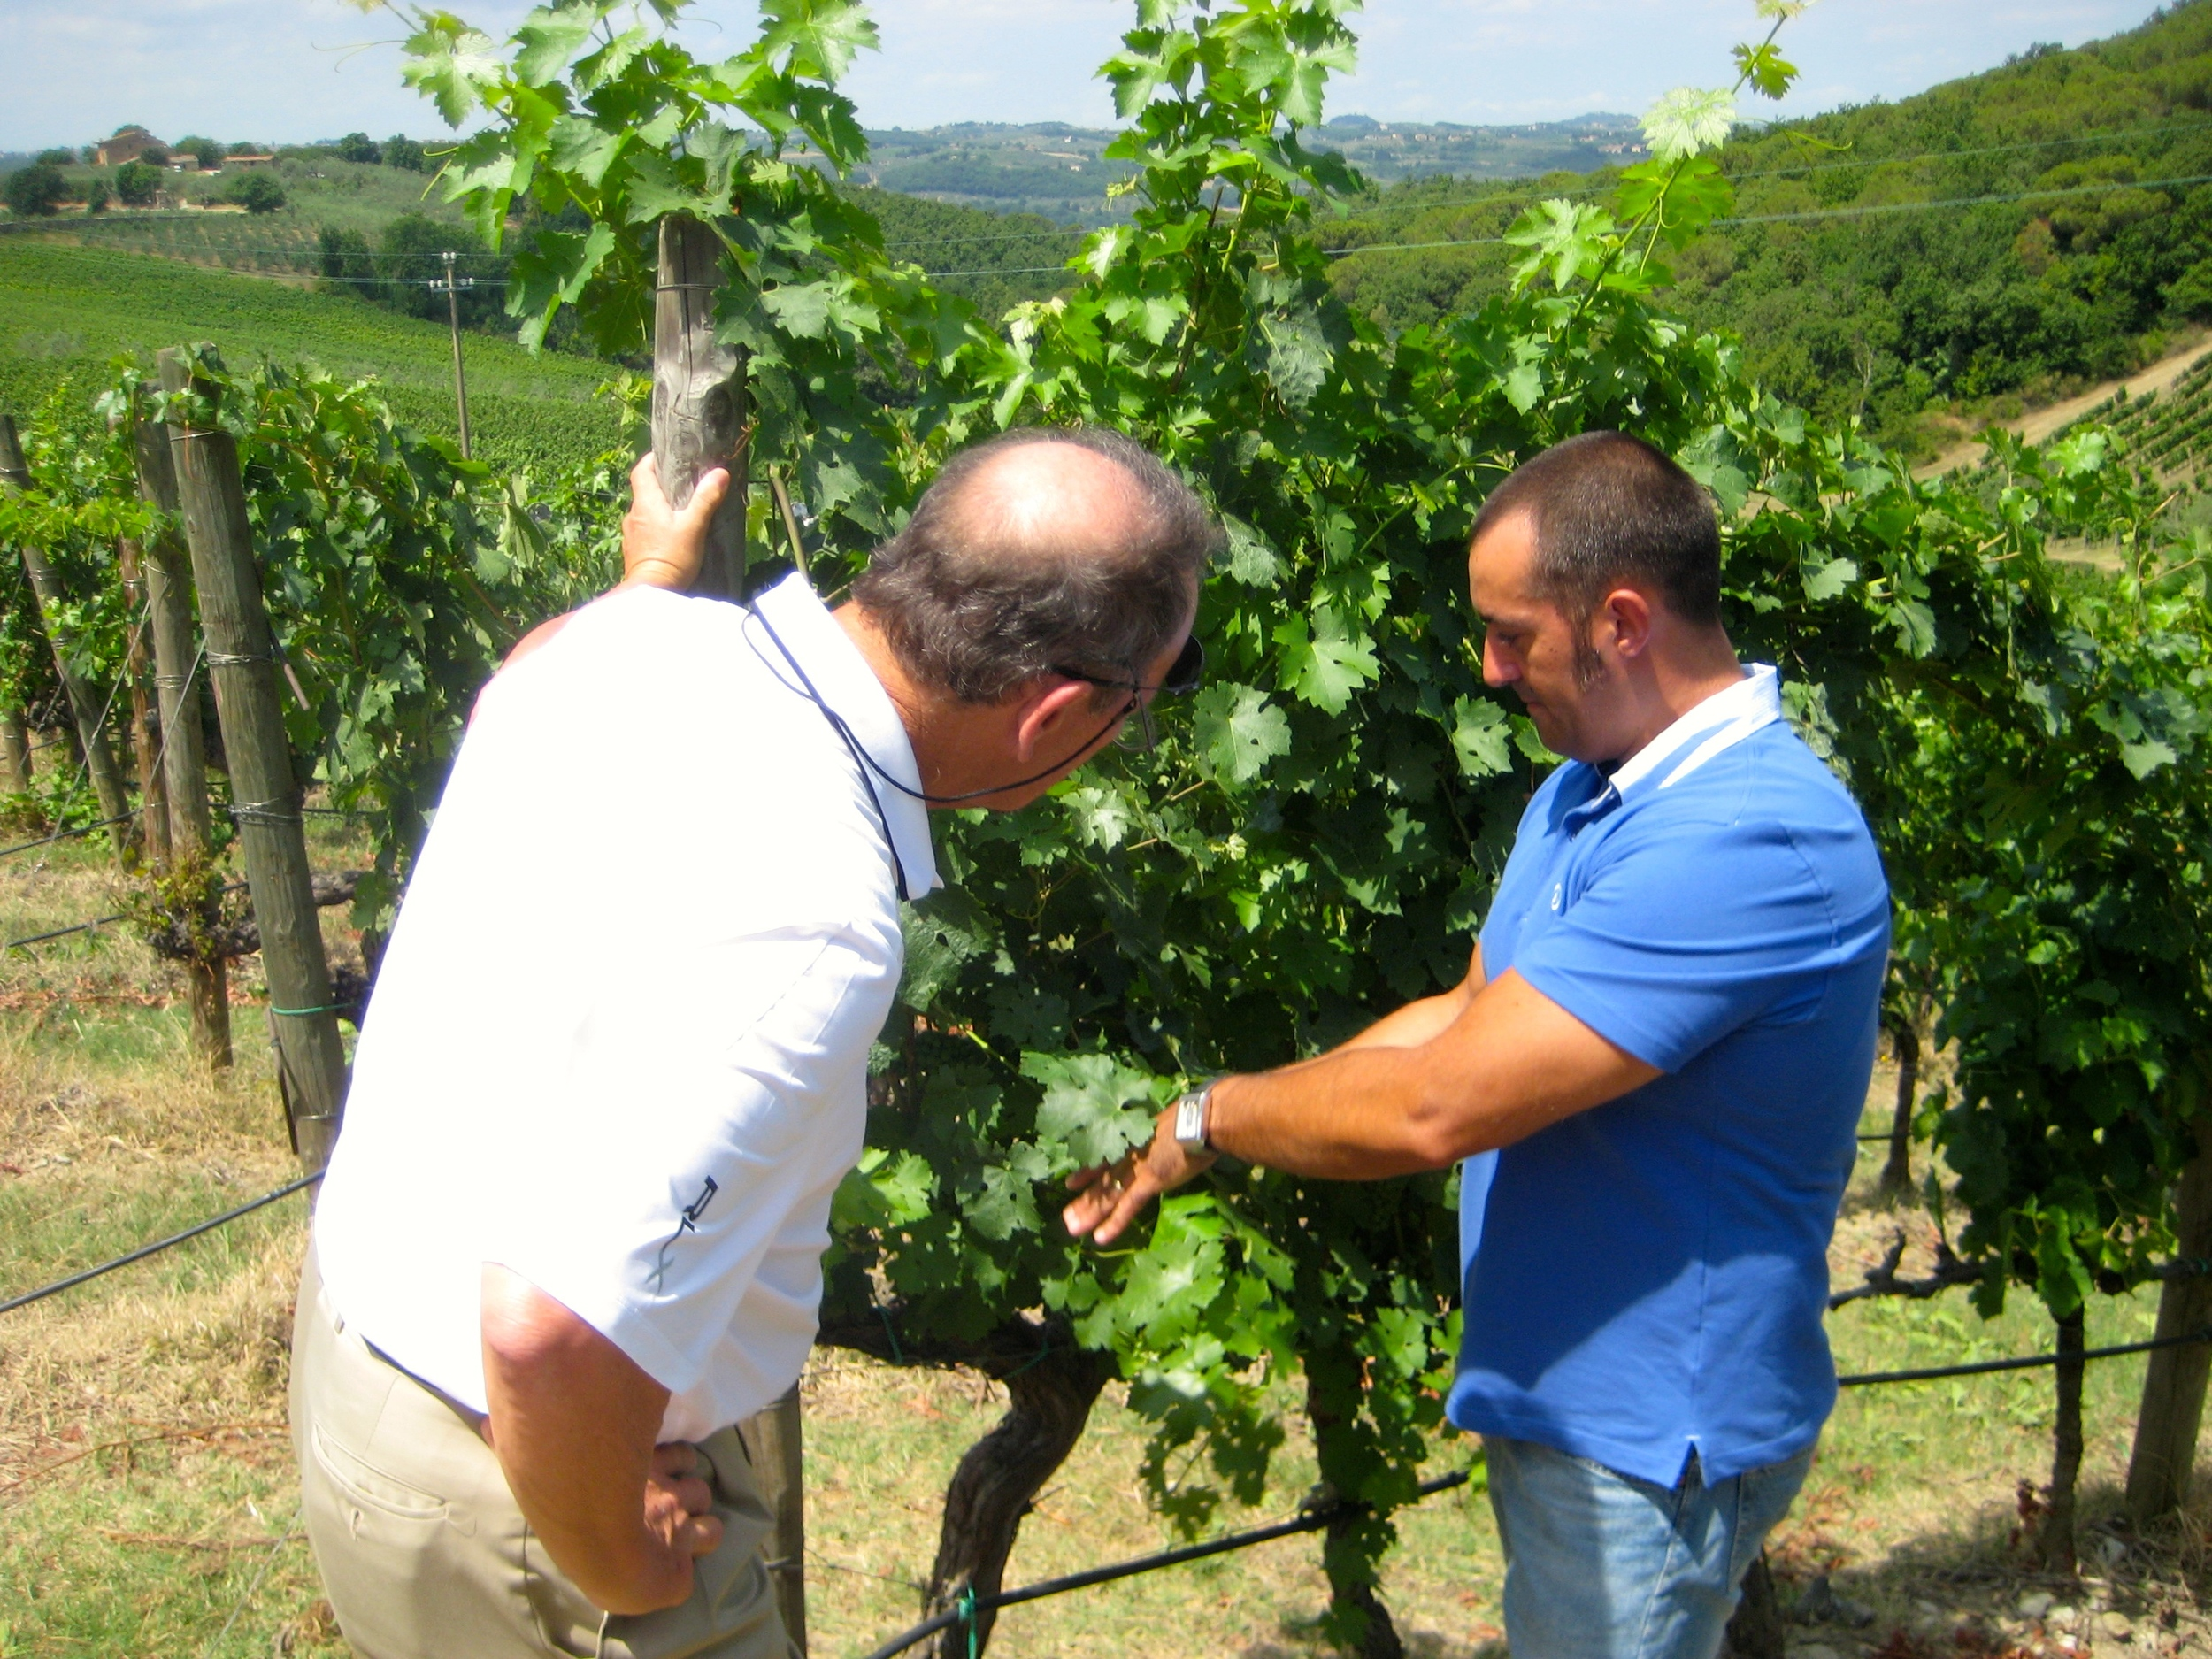 Jeff and Marcello (Antinori's chief vintner) checking for ripeness.